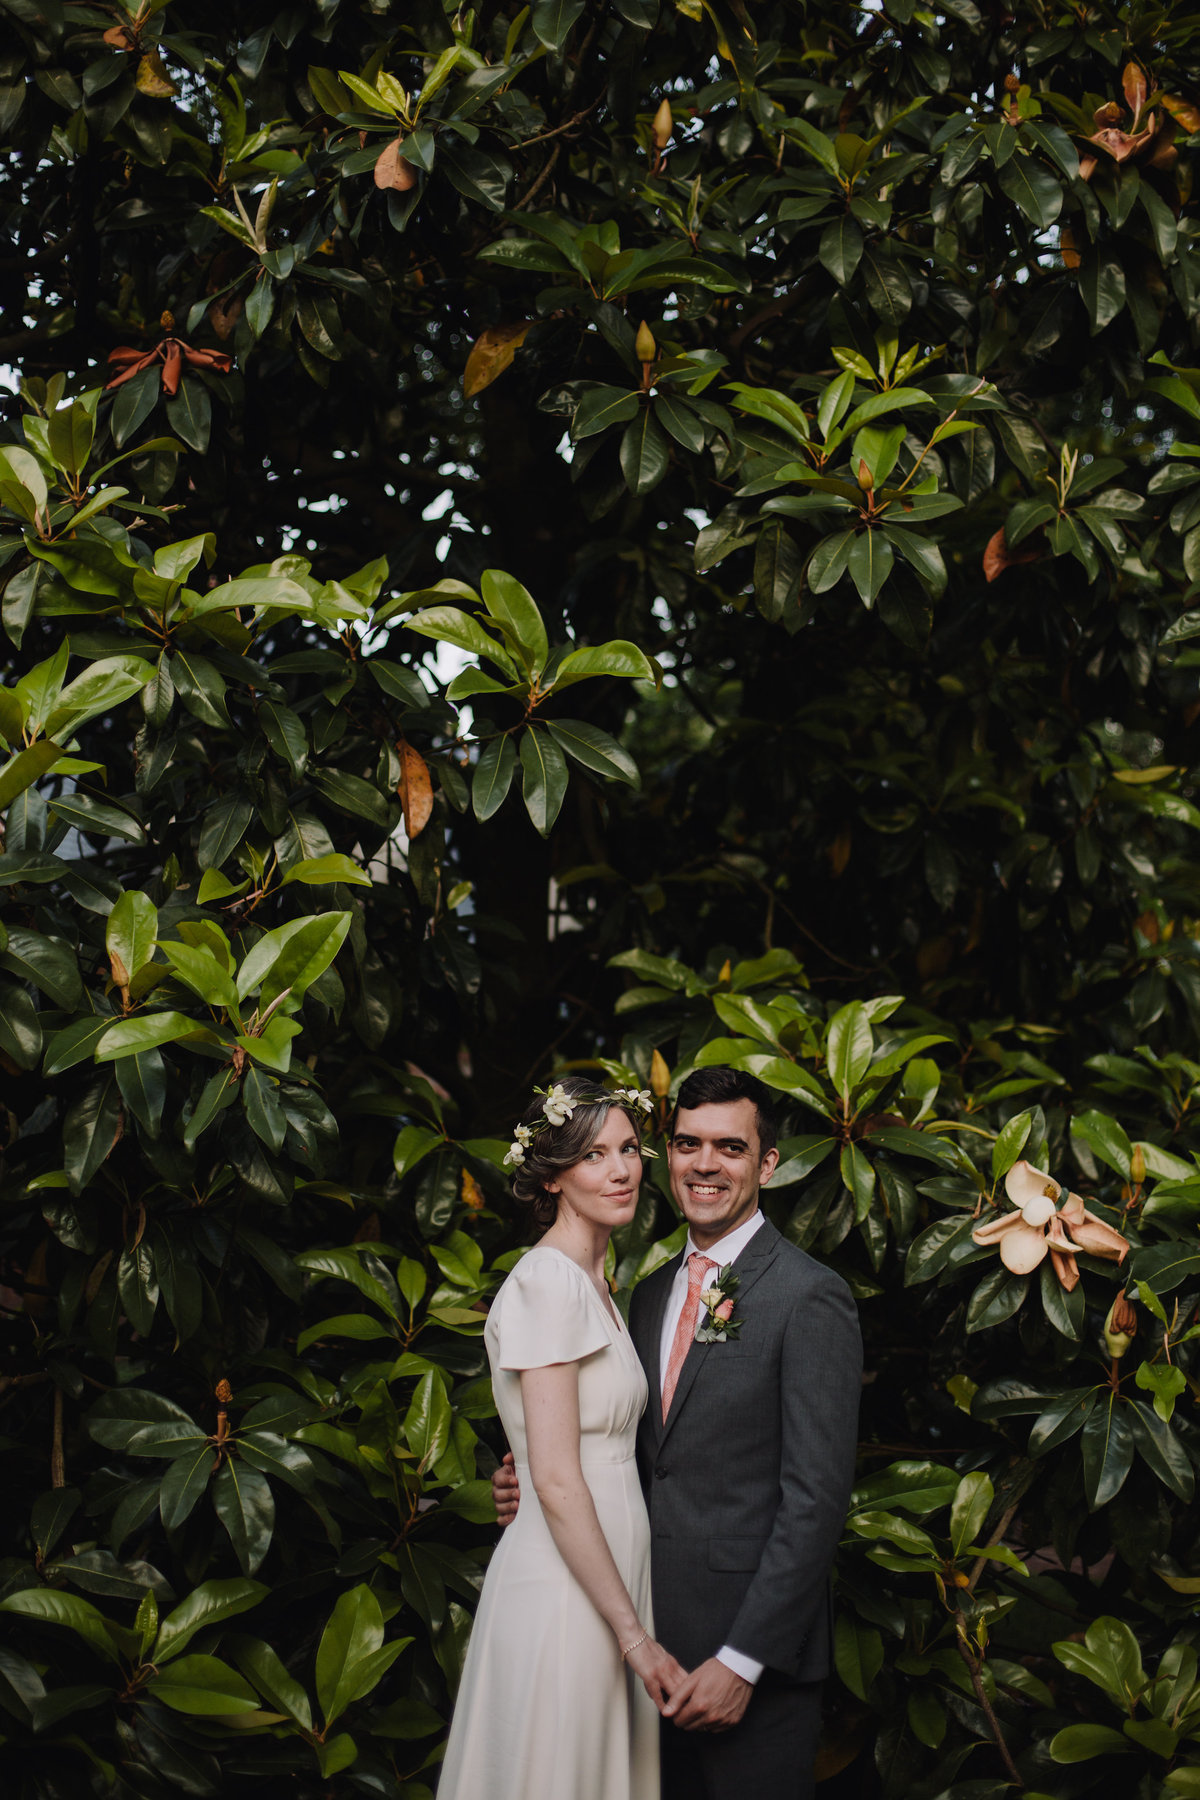 Seven Springs wedding with wedding planner For Love of Love